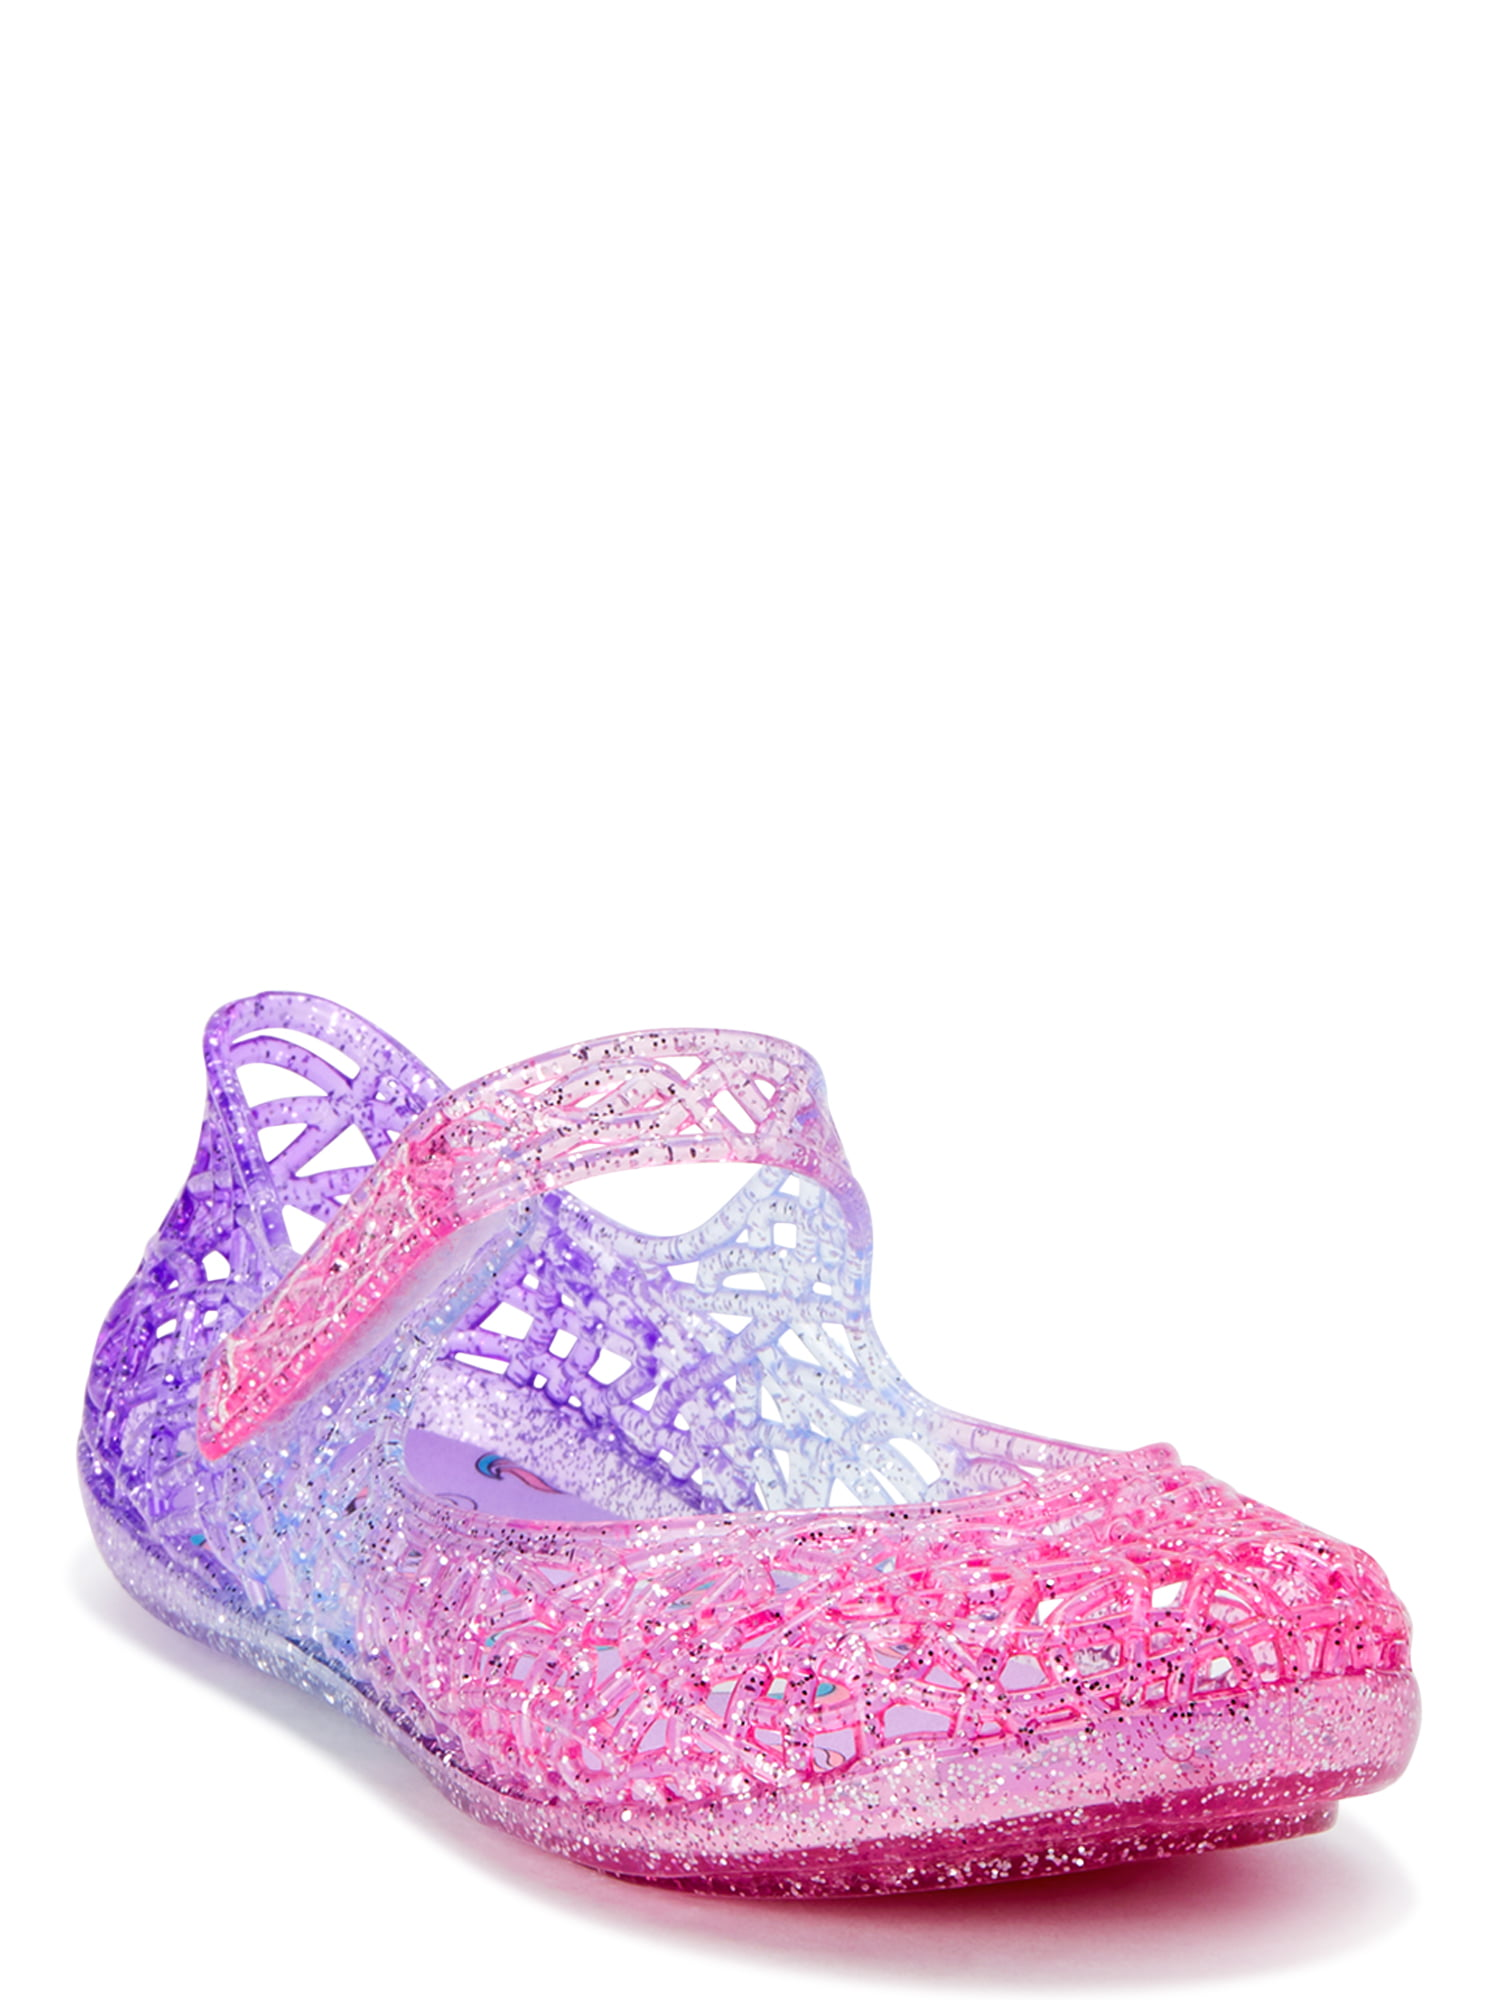 Wonder Nation Toddler Girls Mary Jane Jelly Shoes Size 11 Purple W Bow